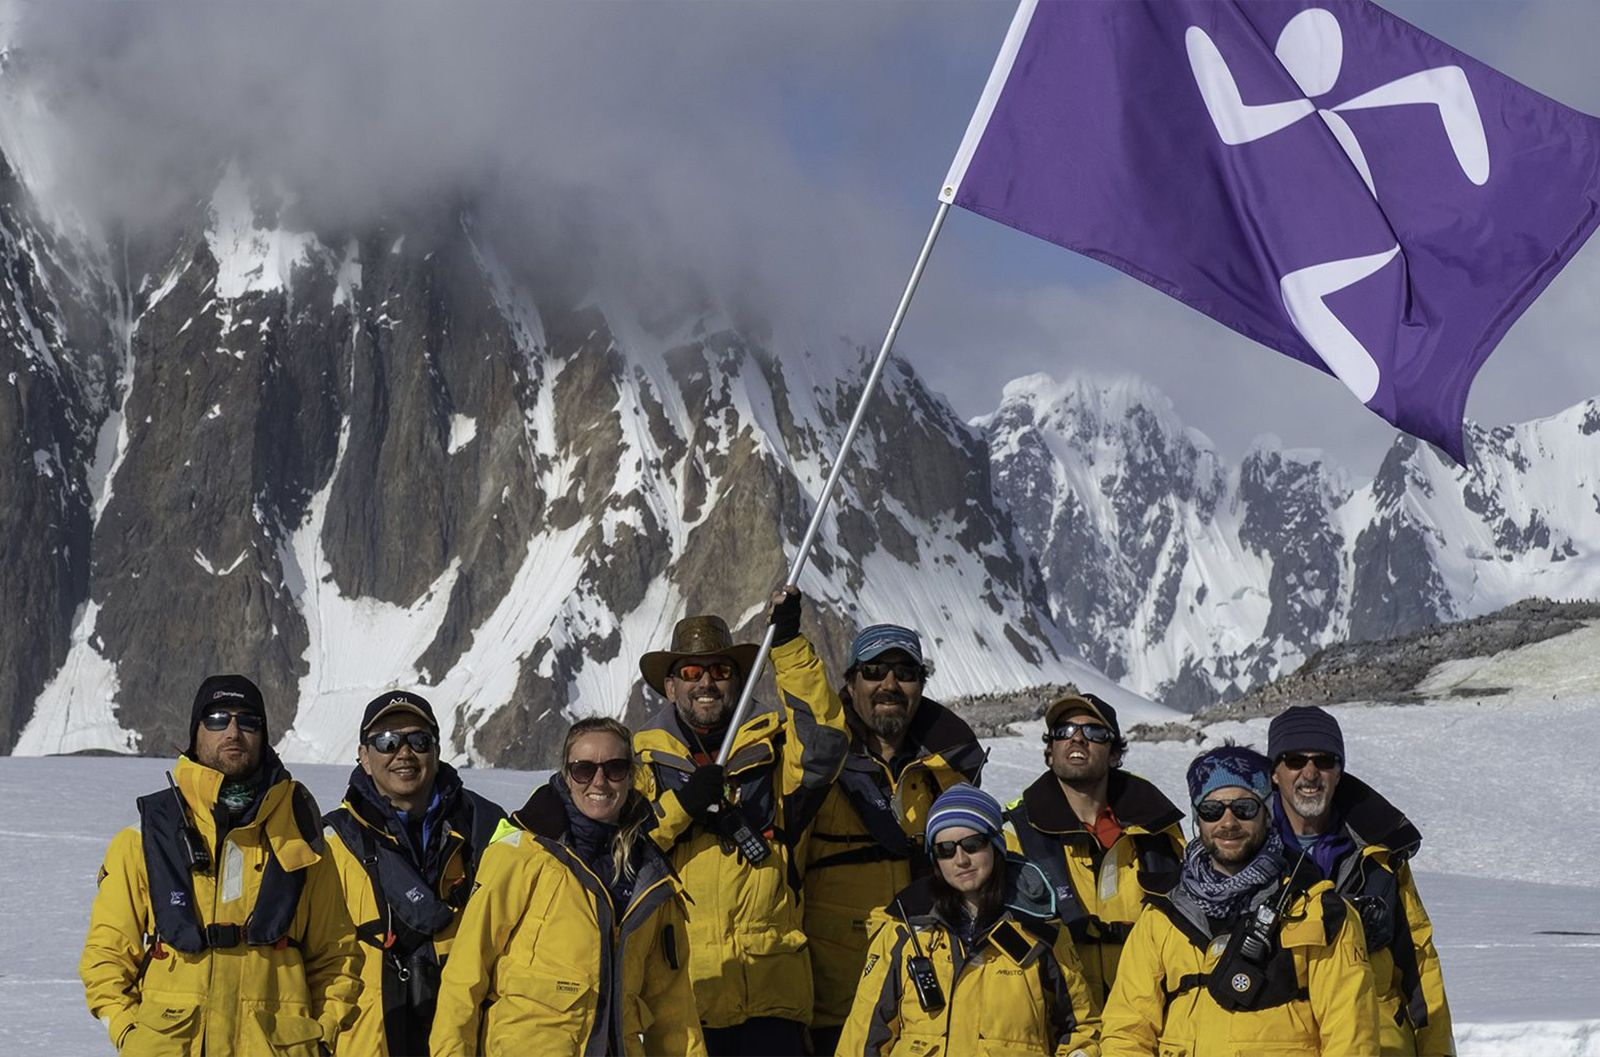 World-first Anytime Fitness Antarctica studio opens | Inside Franchise Business